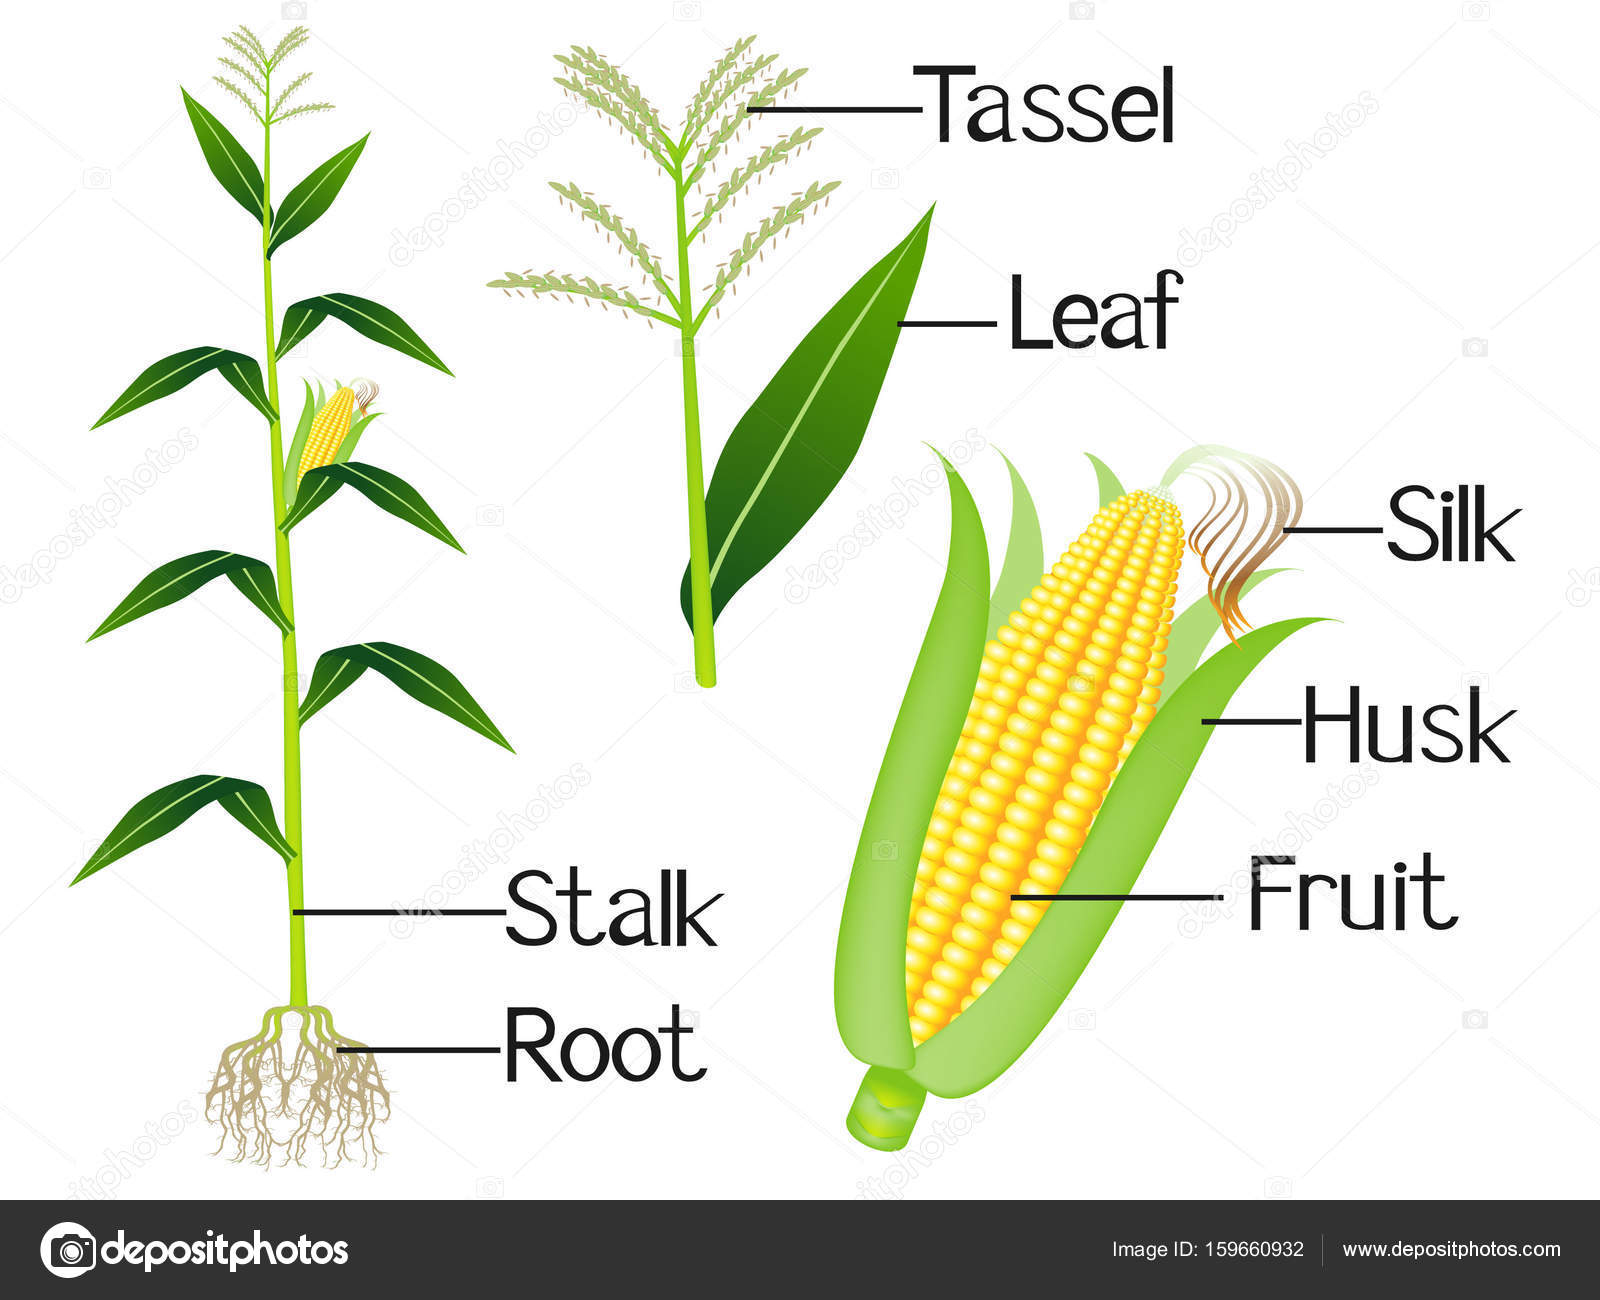 The Illustration Shows Part Of The Corn Plants